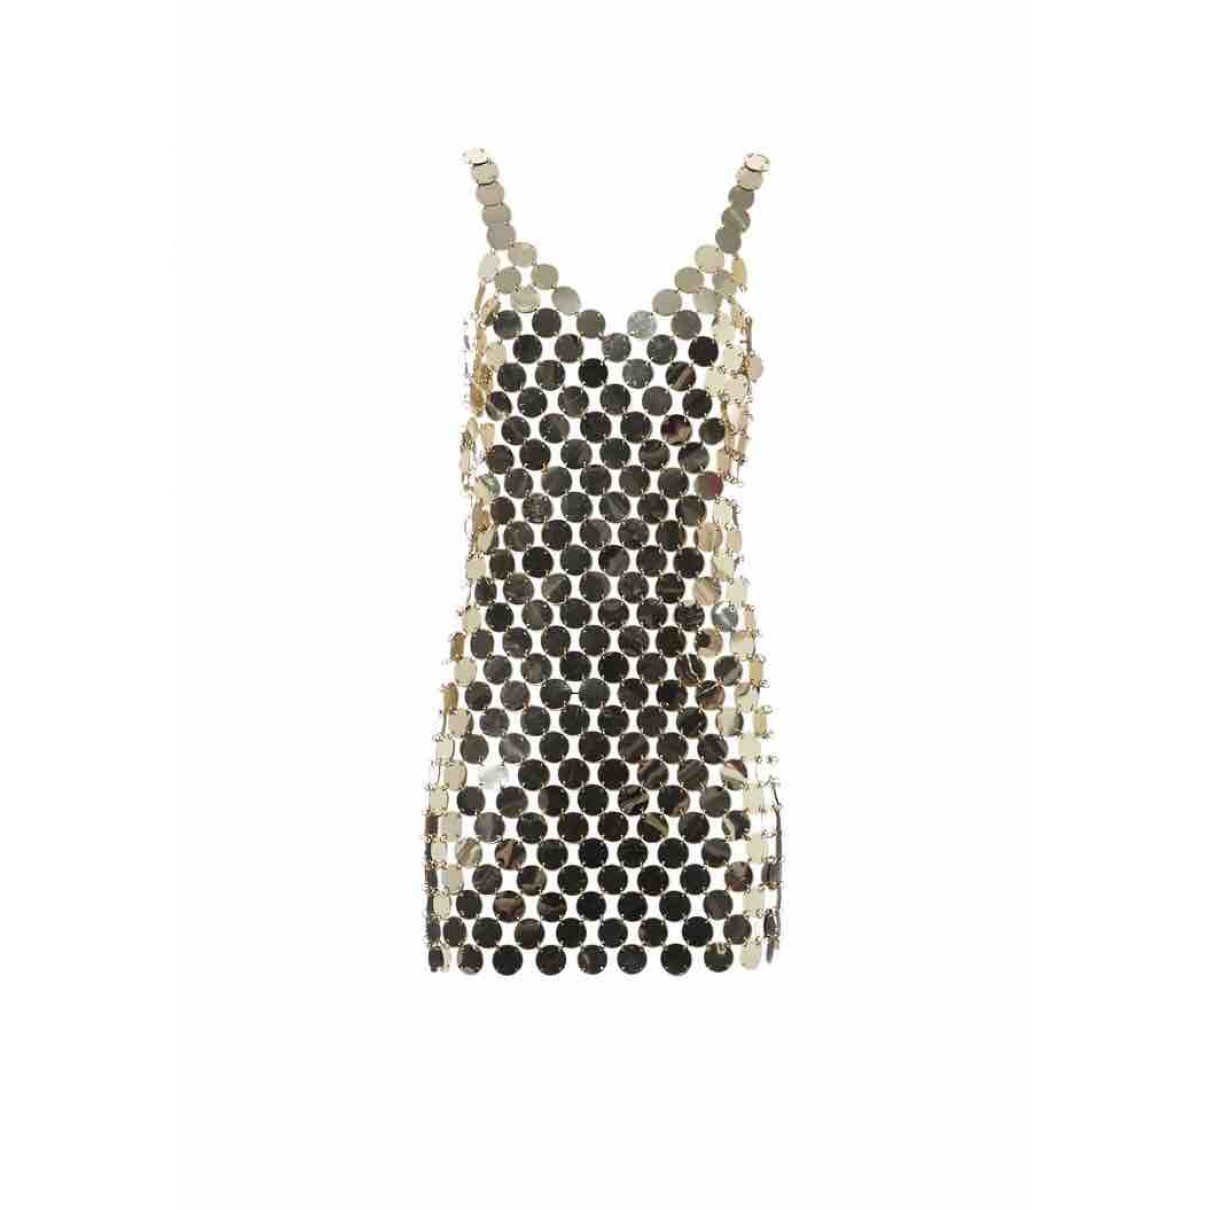 Paco Rabanne \N Gold Glitter dress for Women 38 FR